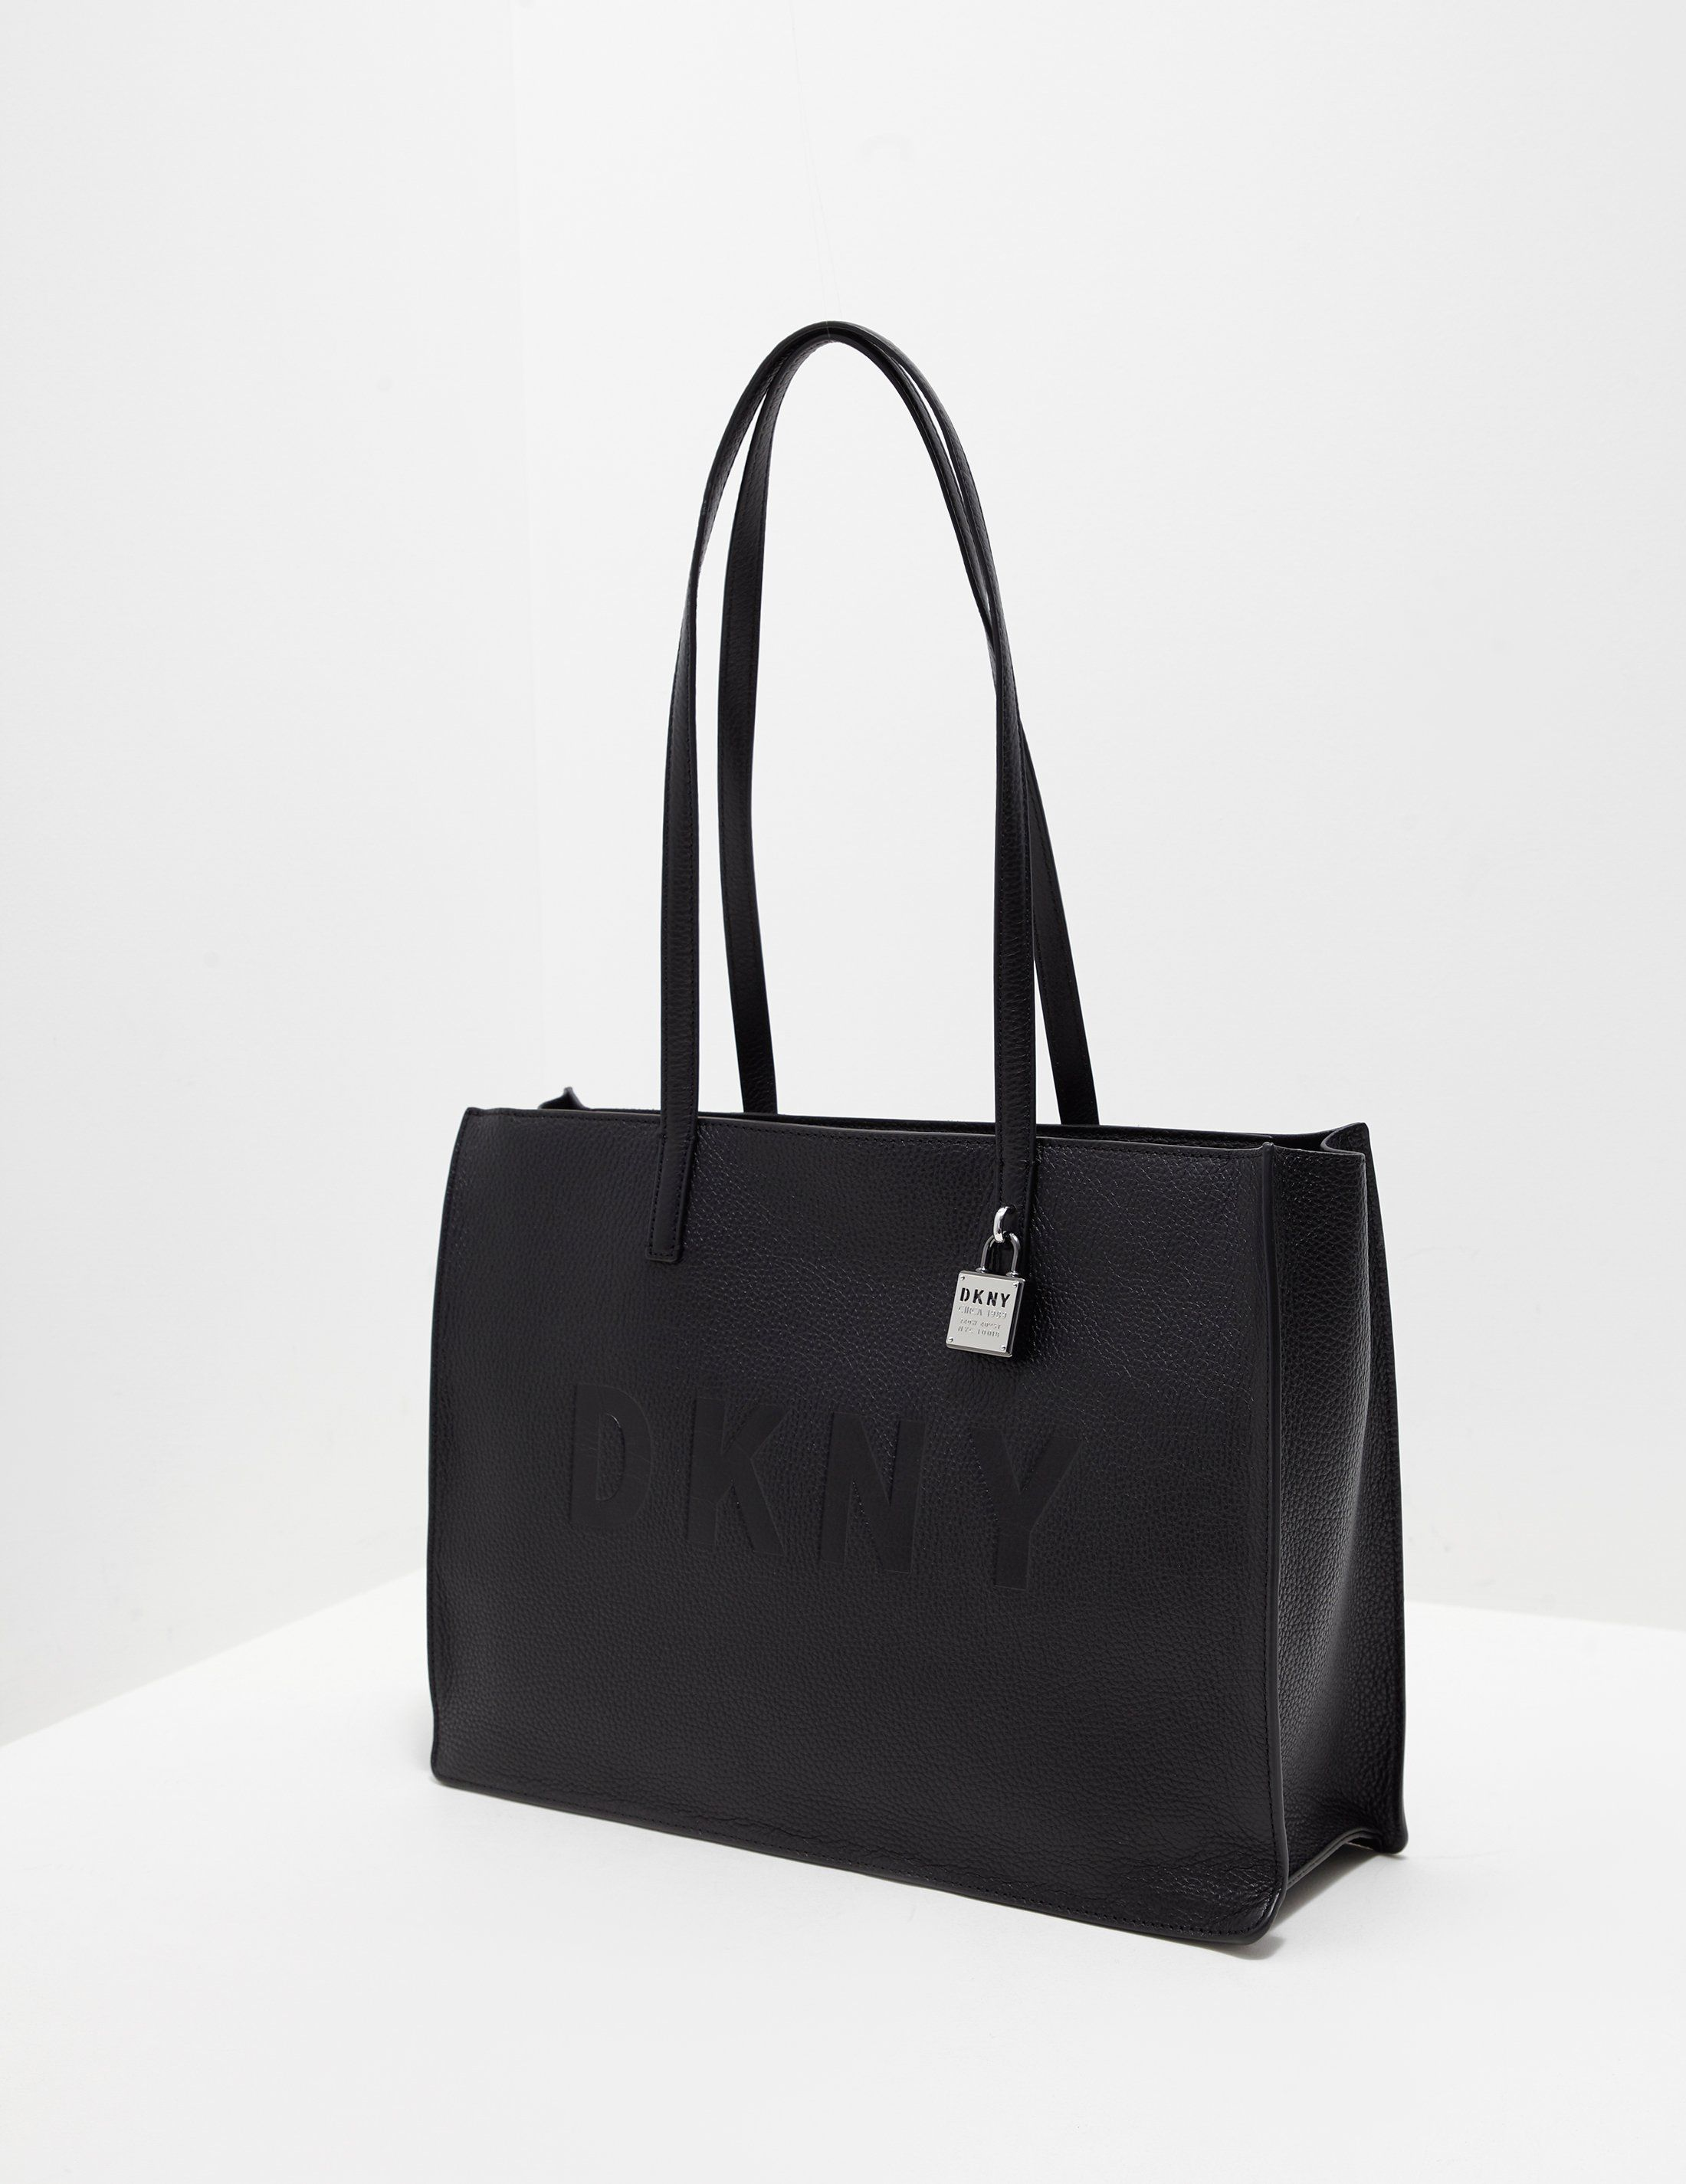 DKNY Commuter Tote Bag